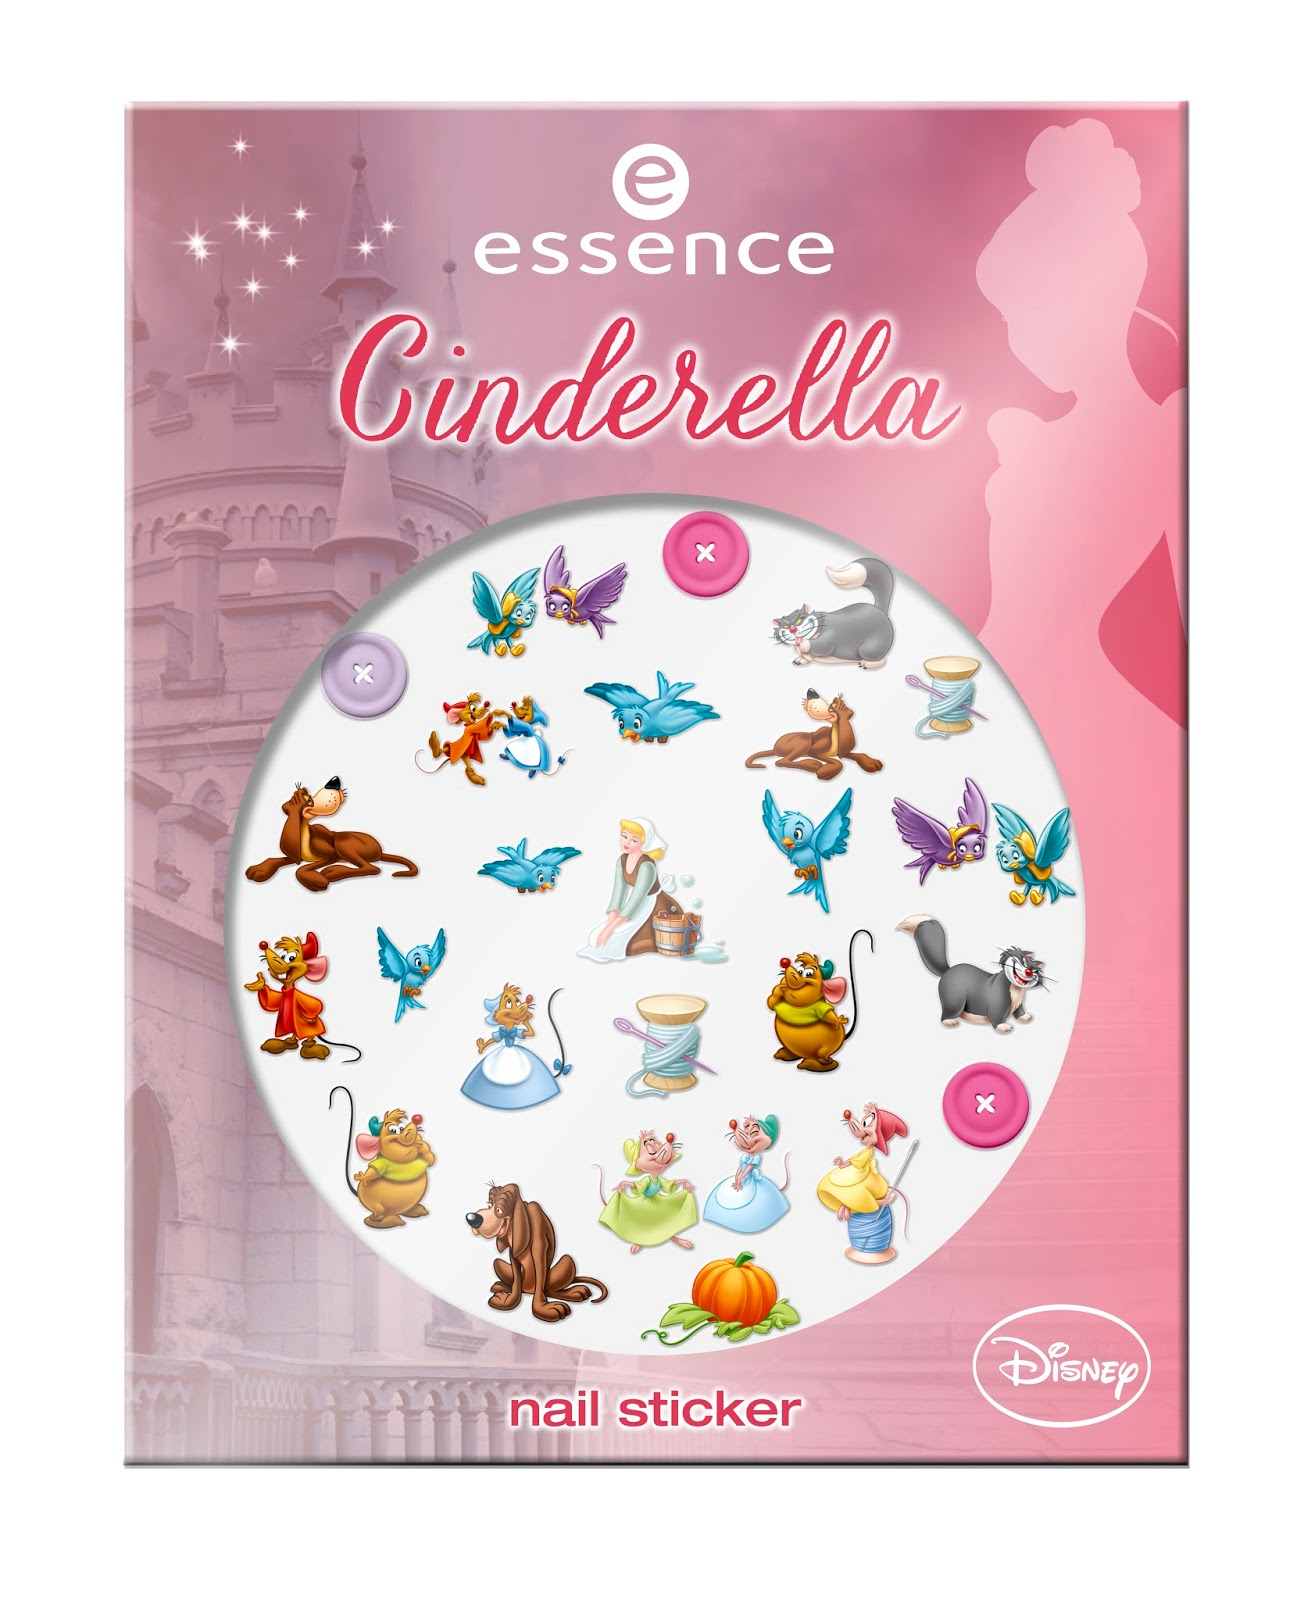 essence cinderella – nail sticker, 01 the stroke of midnight